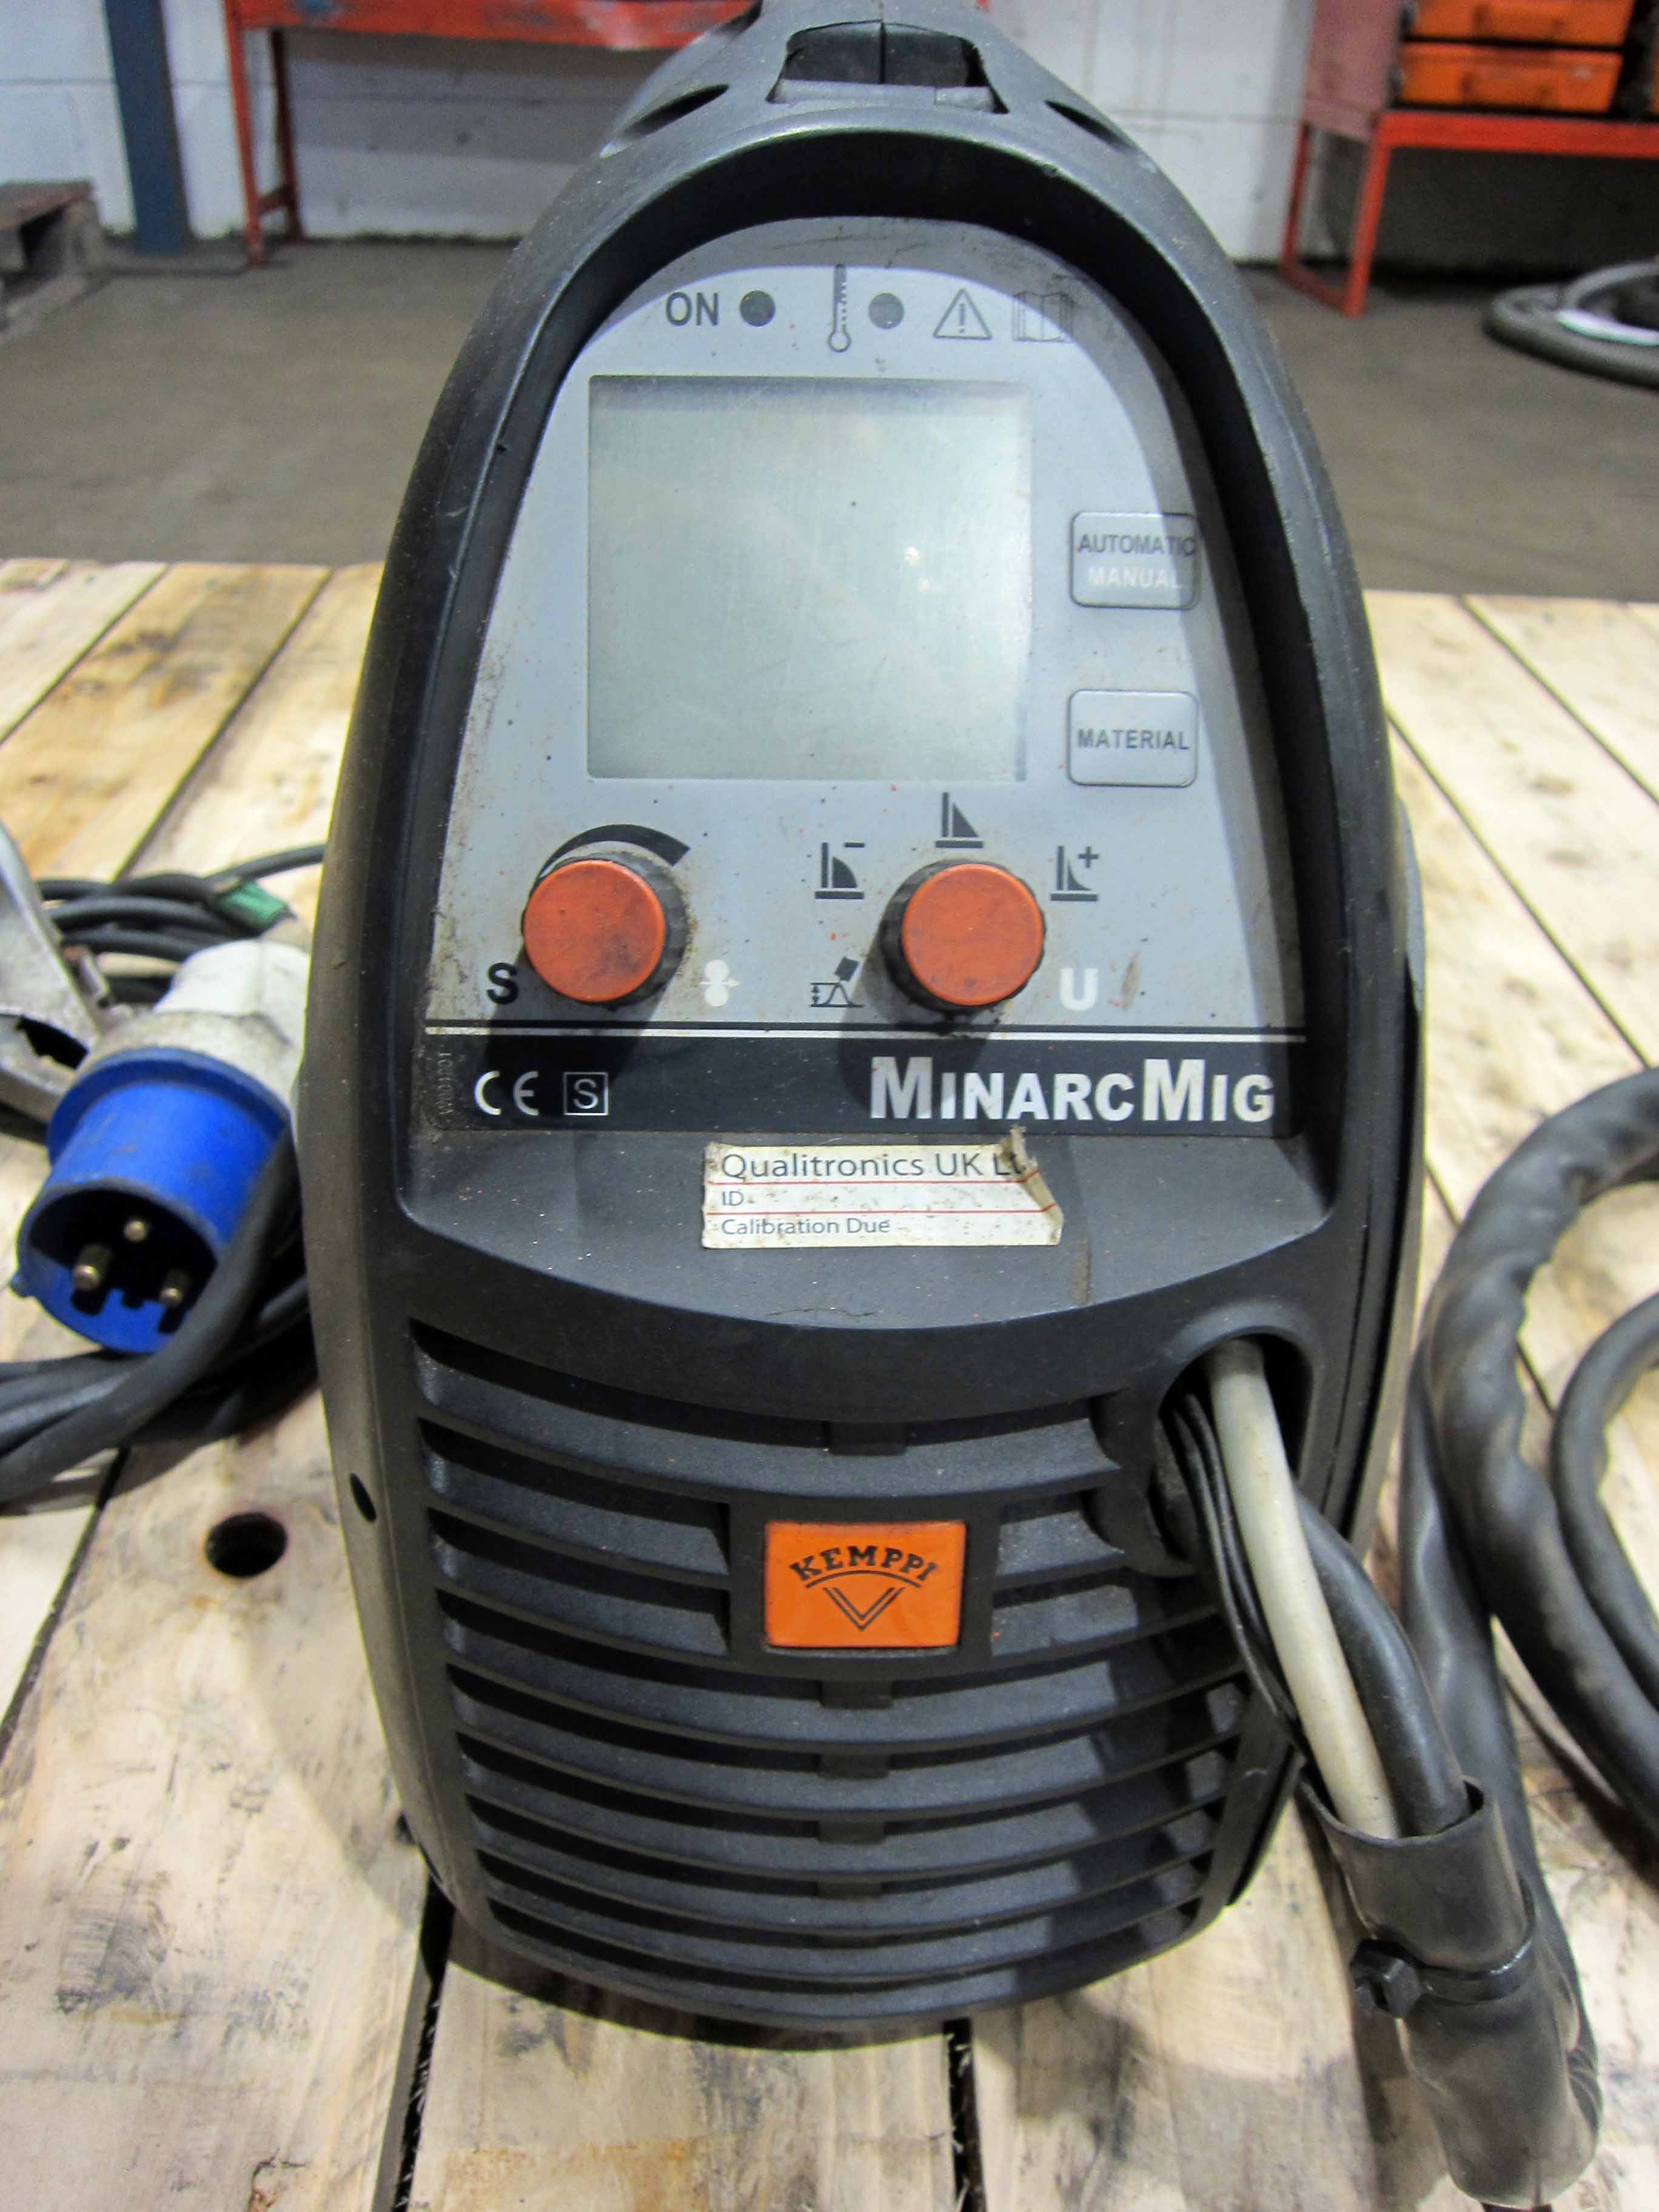 A KEMPPI MinArc Mig Model Adaptive 180 240V Portable Mig Welder complete with Gun and Earth Lead ( - Image 2 of 6